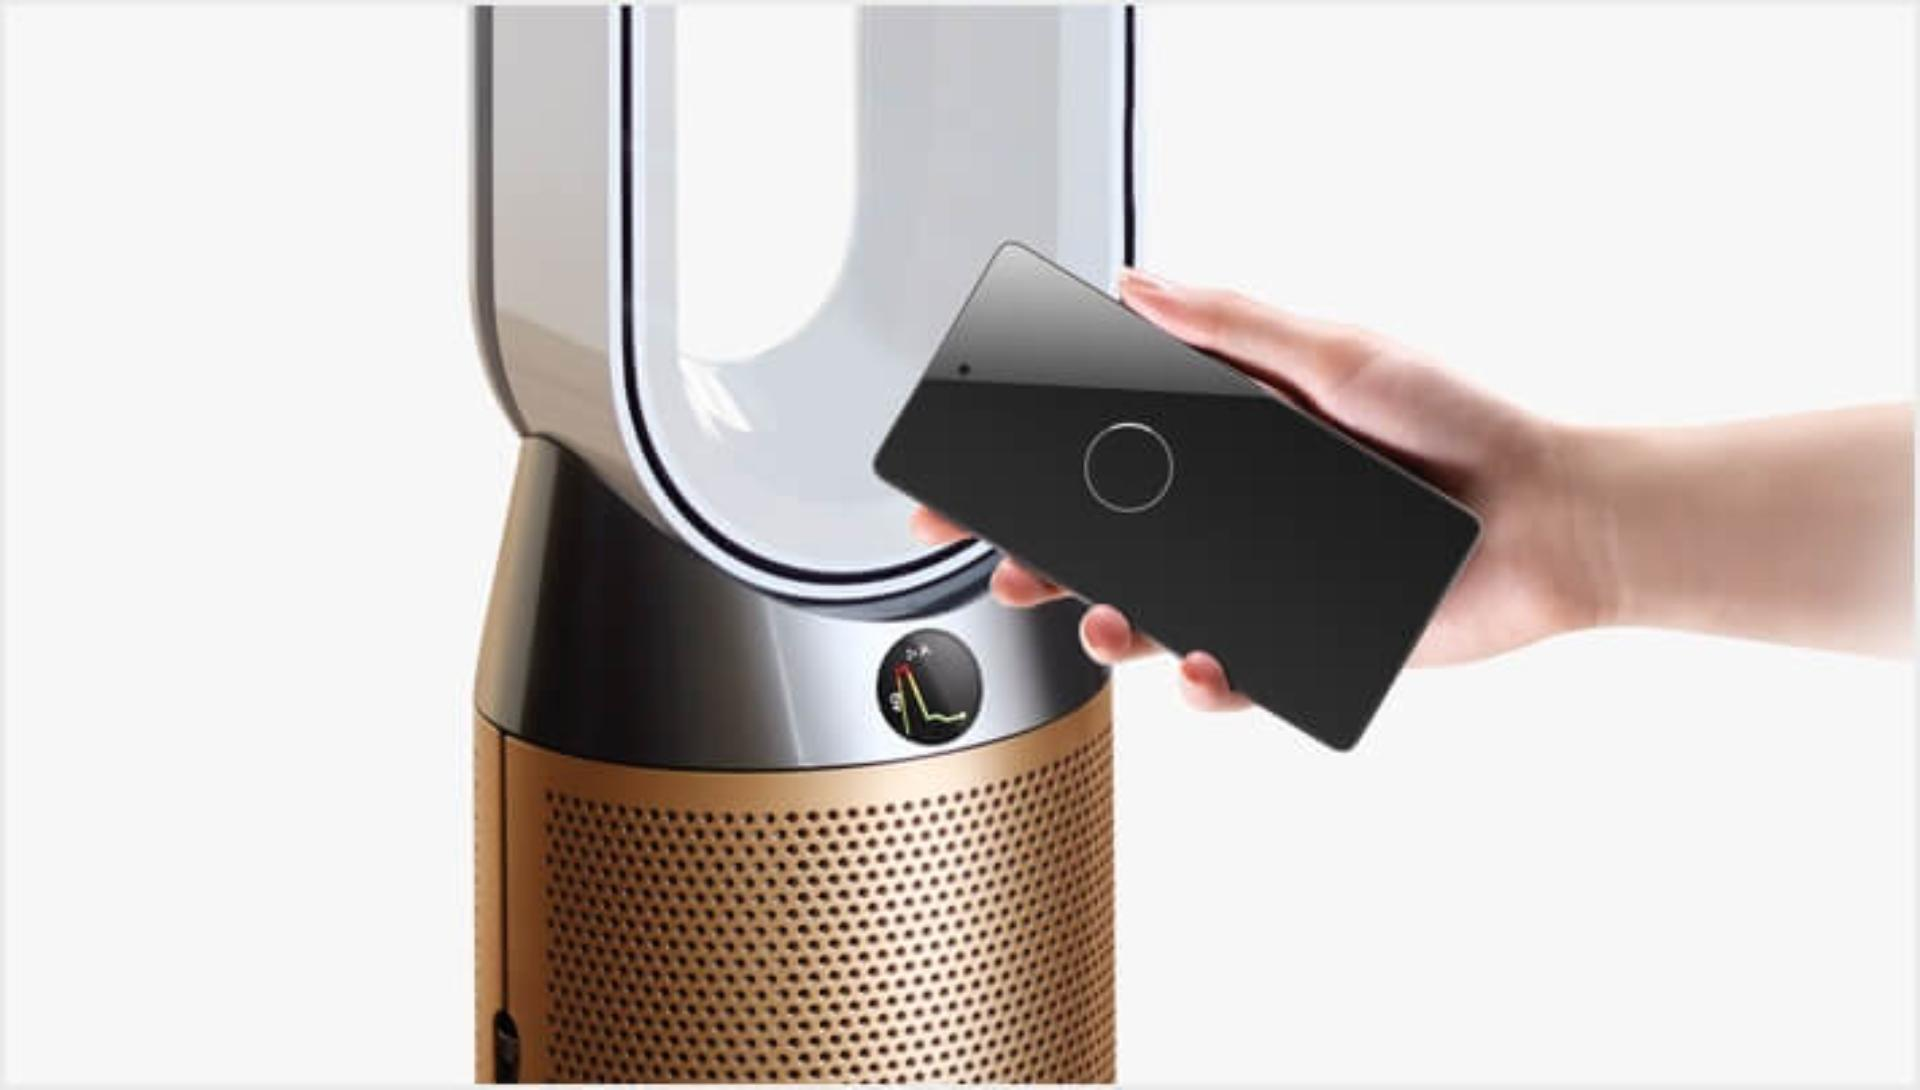 Mobile device being held close to the Dyson Pure Cool Cryptomic air purifier